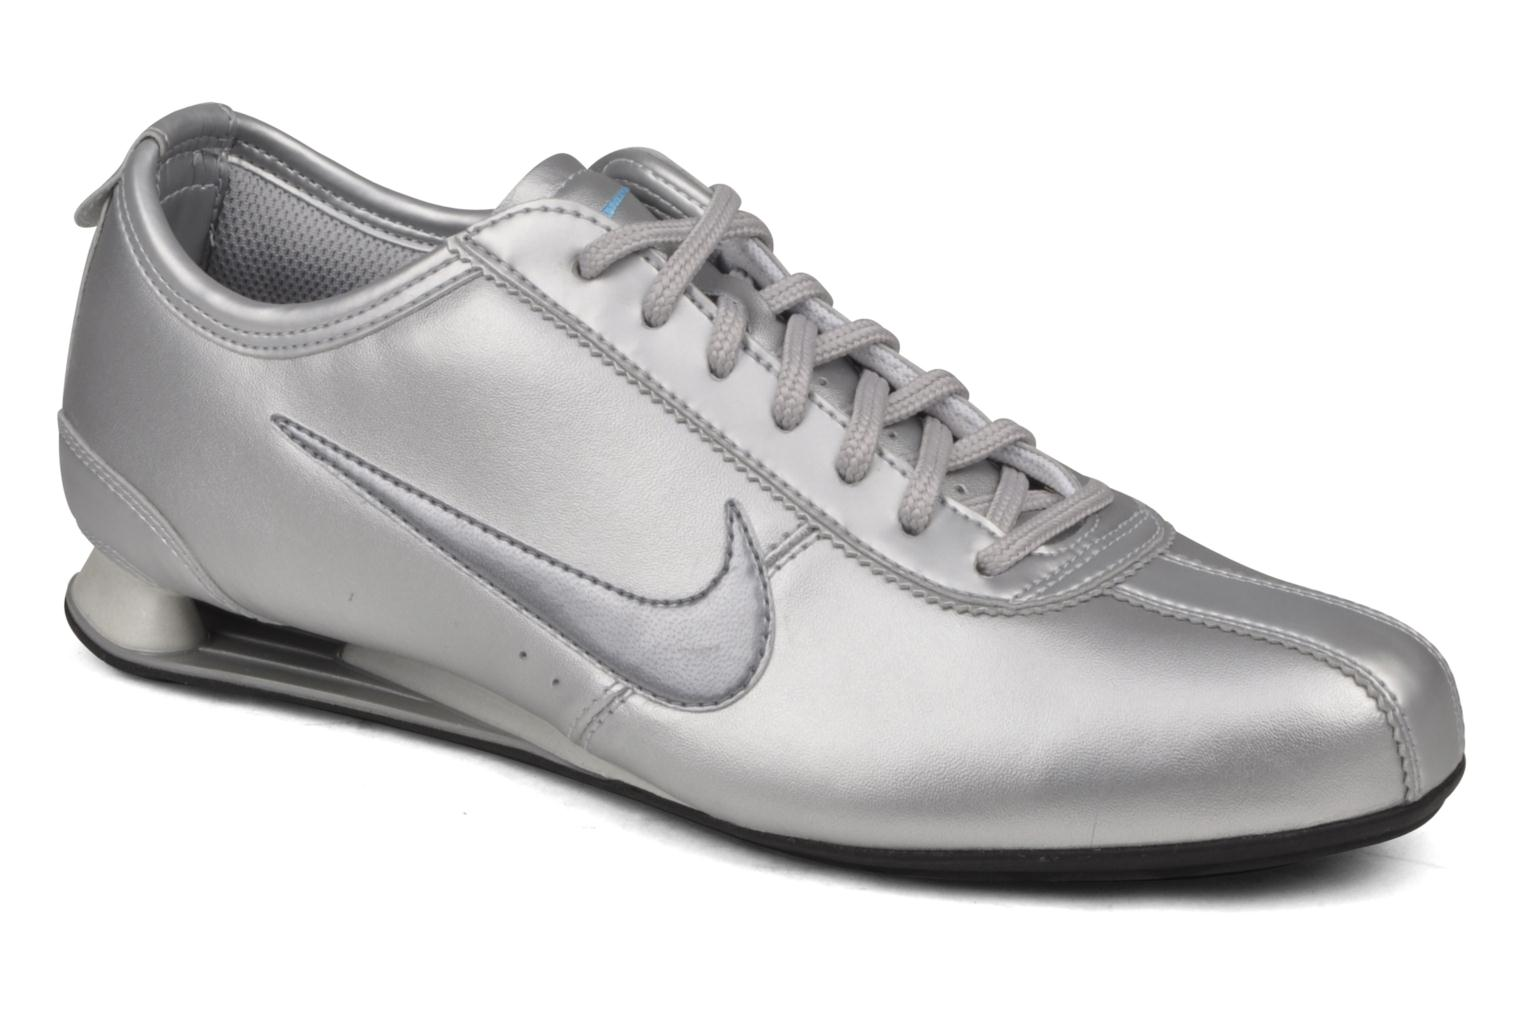 timeless design 74fb0 8f15f ... shop trainers nike nike shox rivalry silver detailed view pair view  78bd6 1b4f9 ...